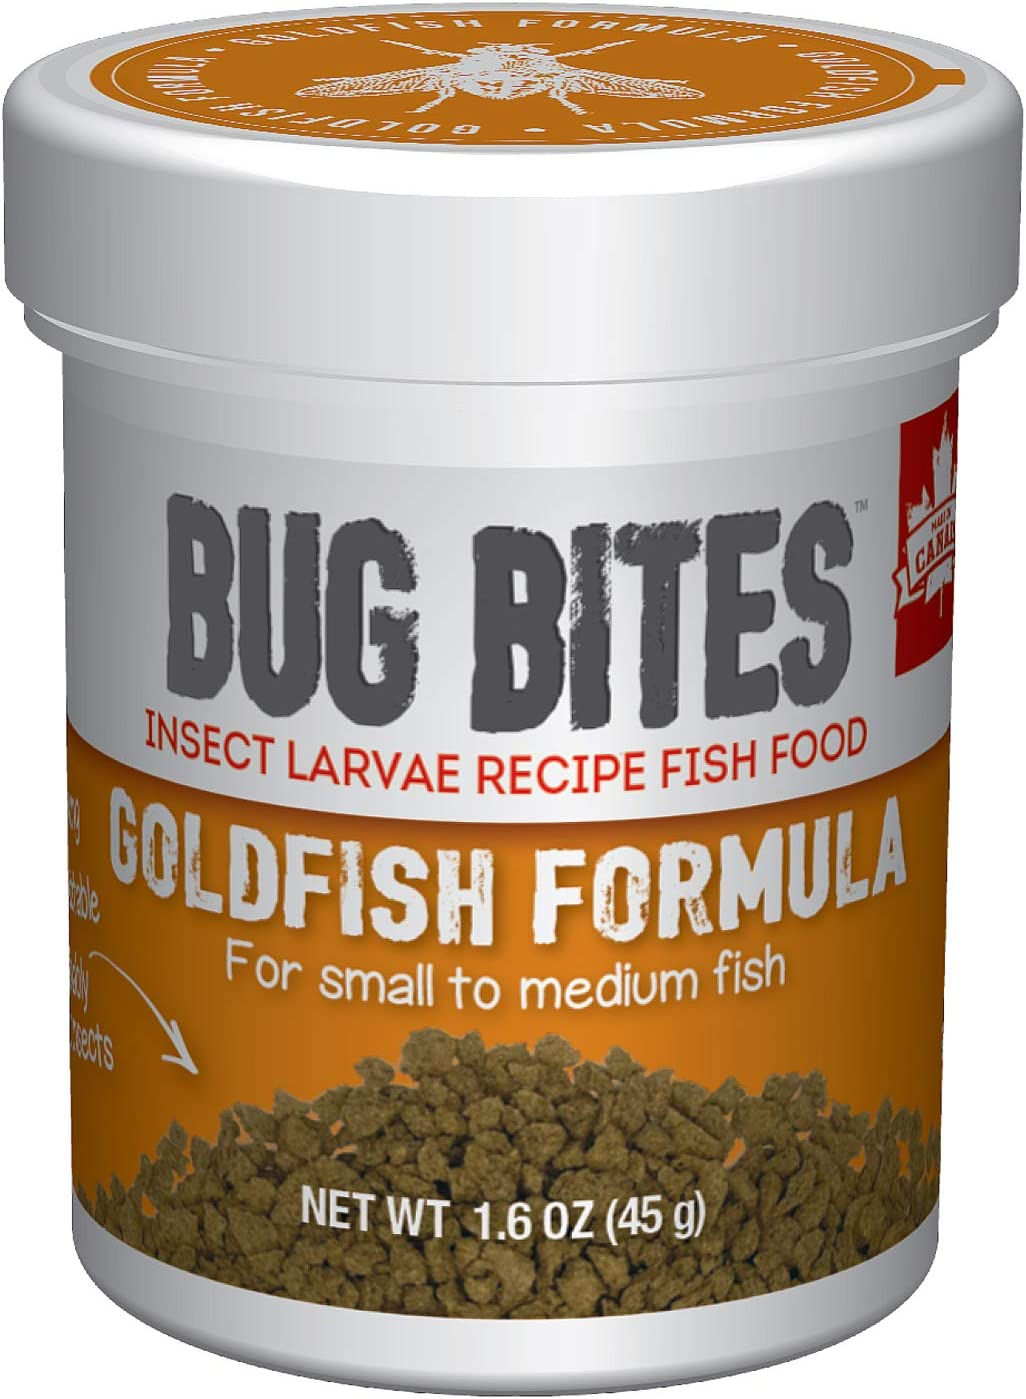 Fluval Bug Bites Goldfish Fish Food, Granules for Small to Medium Sized Fish, 1.6 oz., A6583